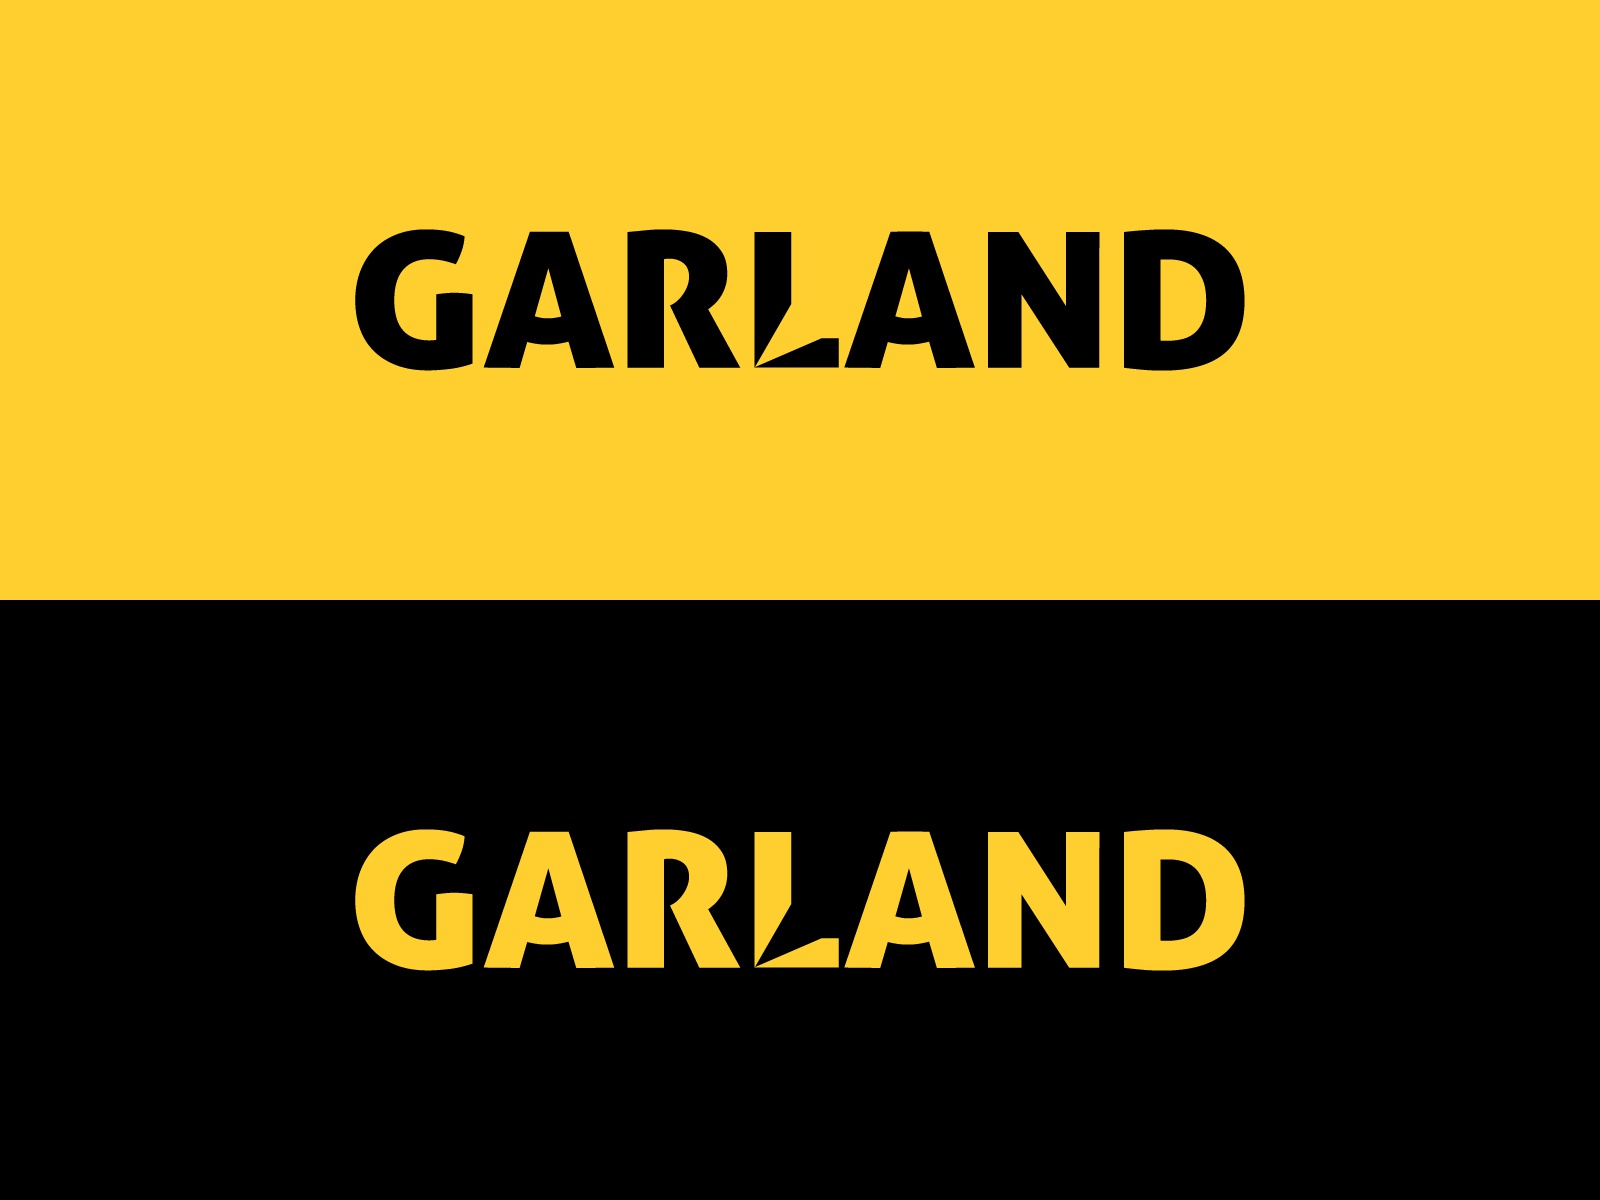 Logotype for GARLAND